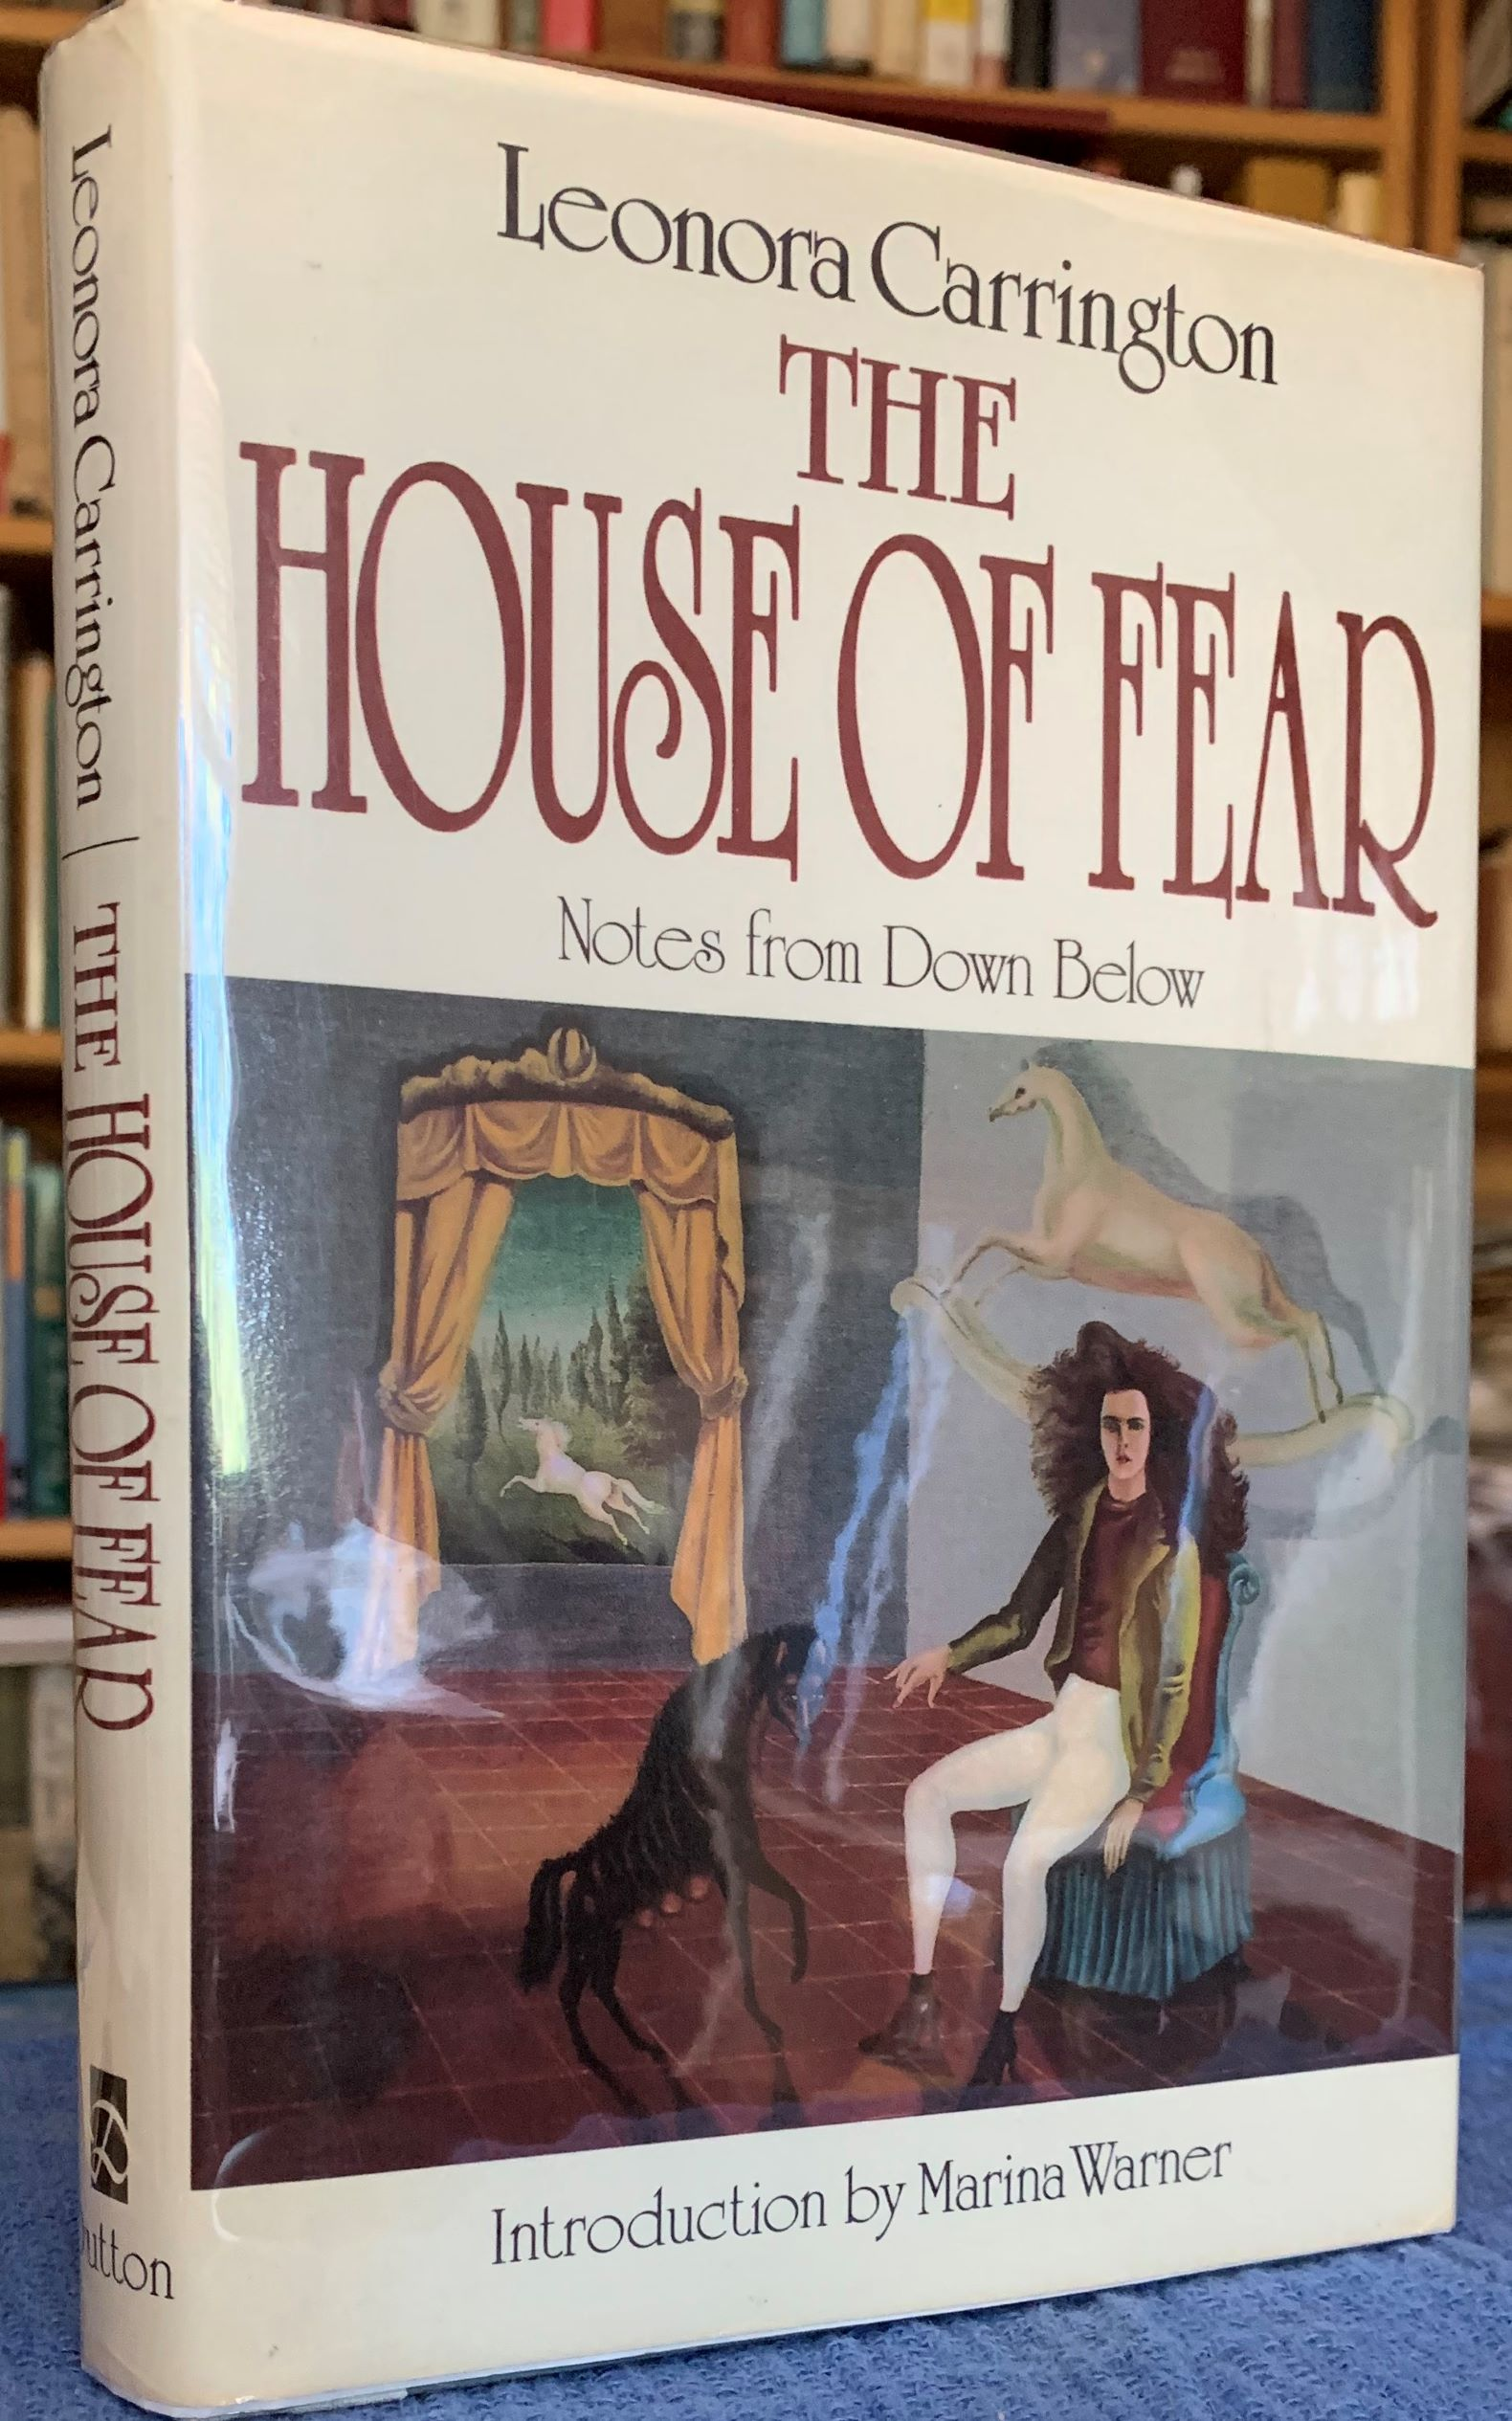 Image for The House of Fear, Notes from Down Below.